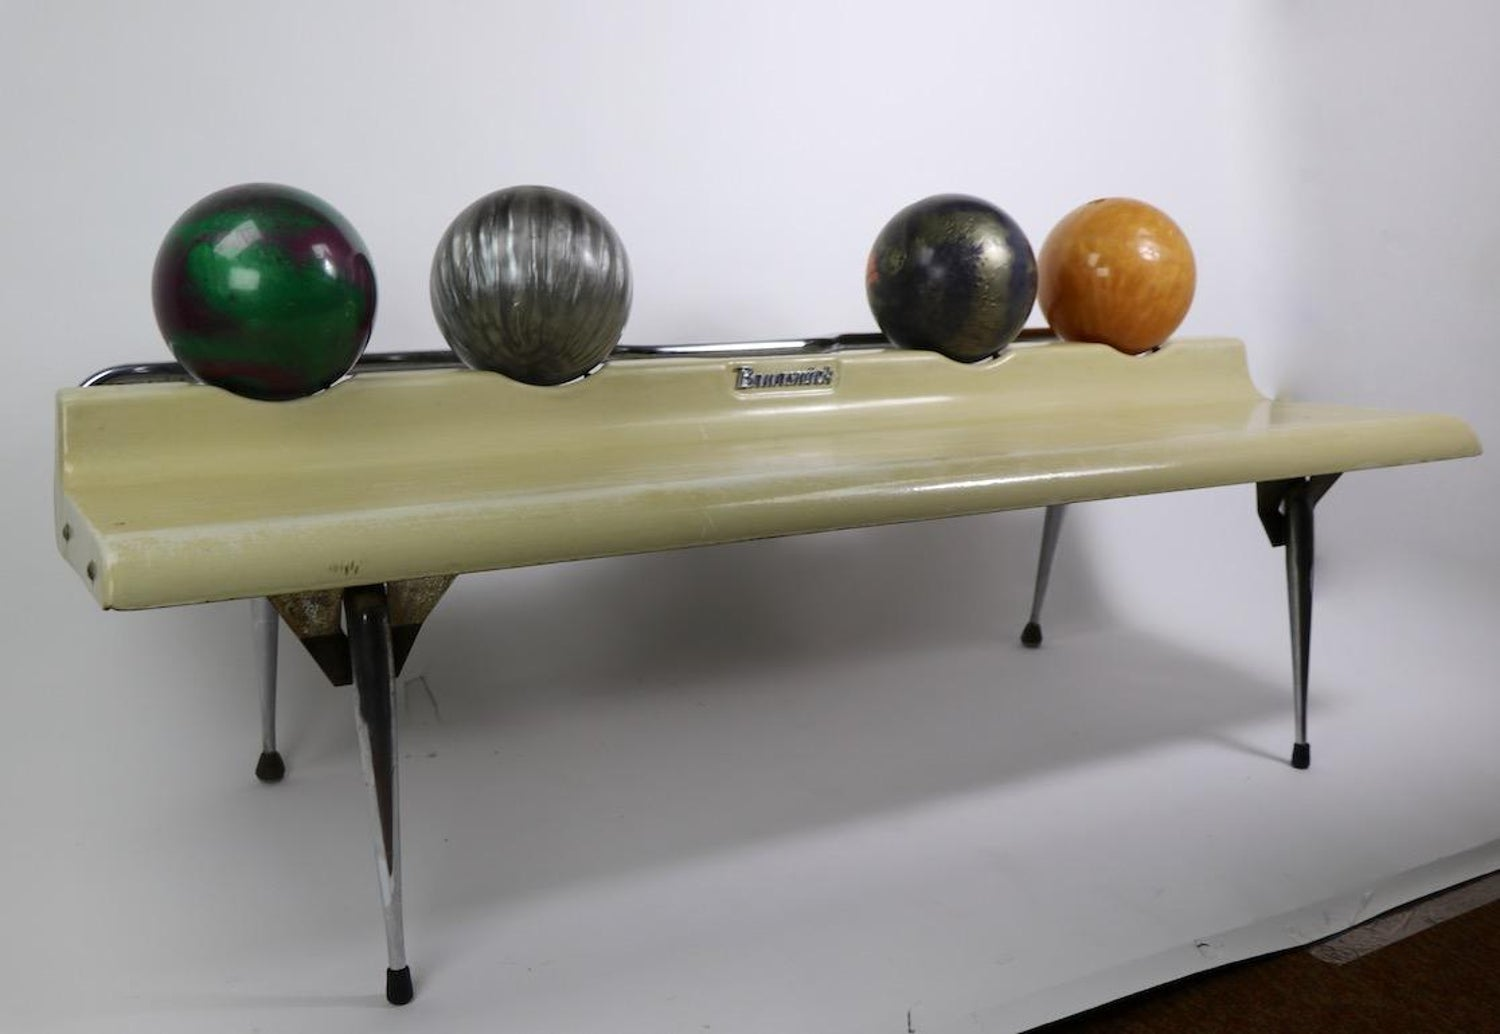 Amazing Vintage Bowling Ball Bench By Brunswick At 1Stdibs Gmtry Best Dining Table And Chair Ideas Images Gmtryco